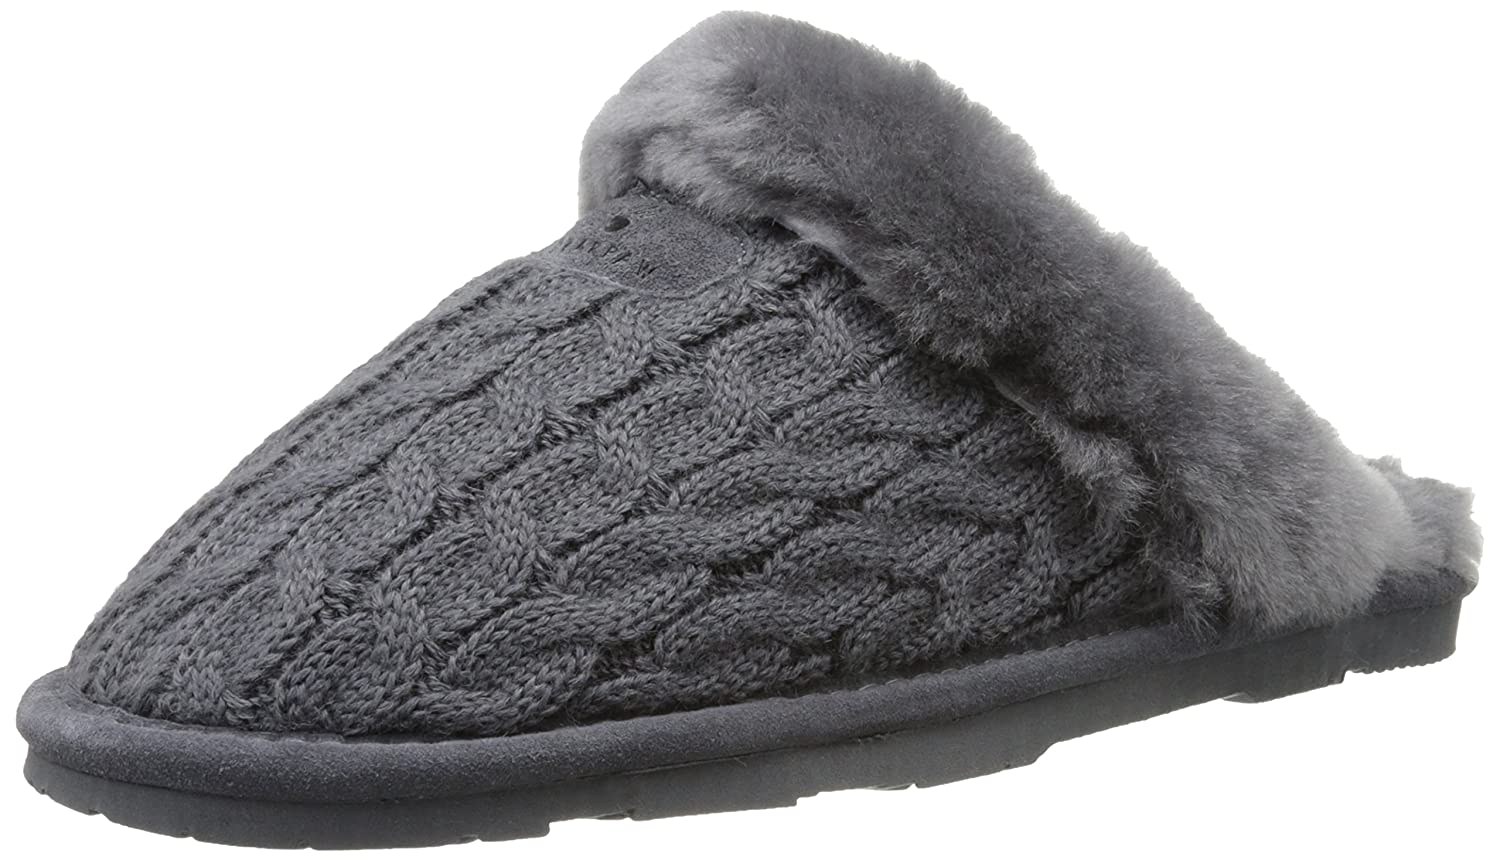 BEARPAW Women's Effie Slide Slipper B00IXANV3W 7 B(M) US|Charcoal